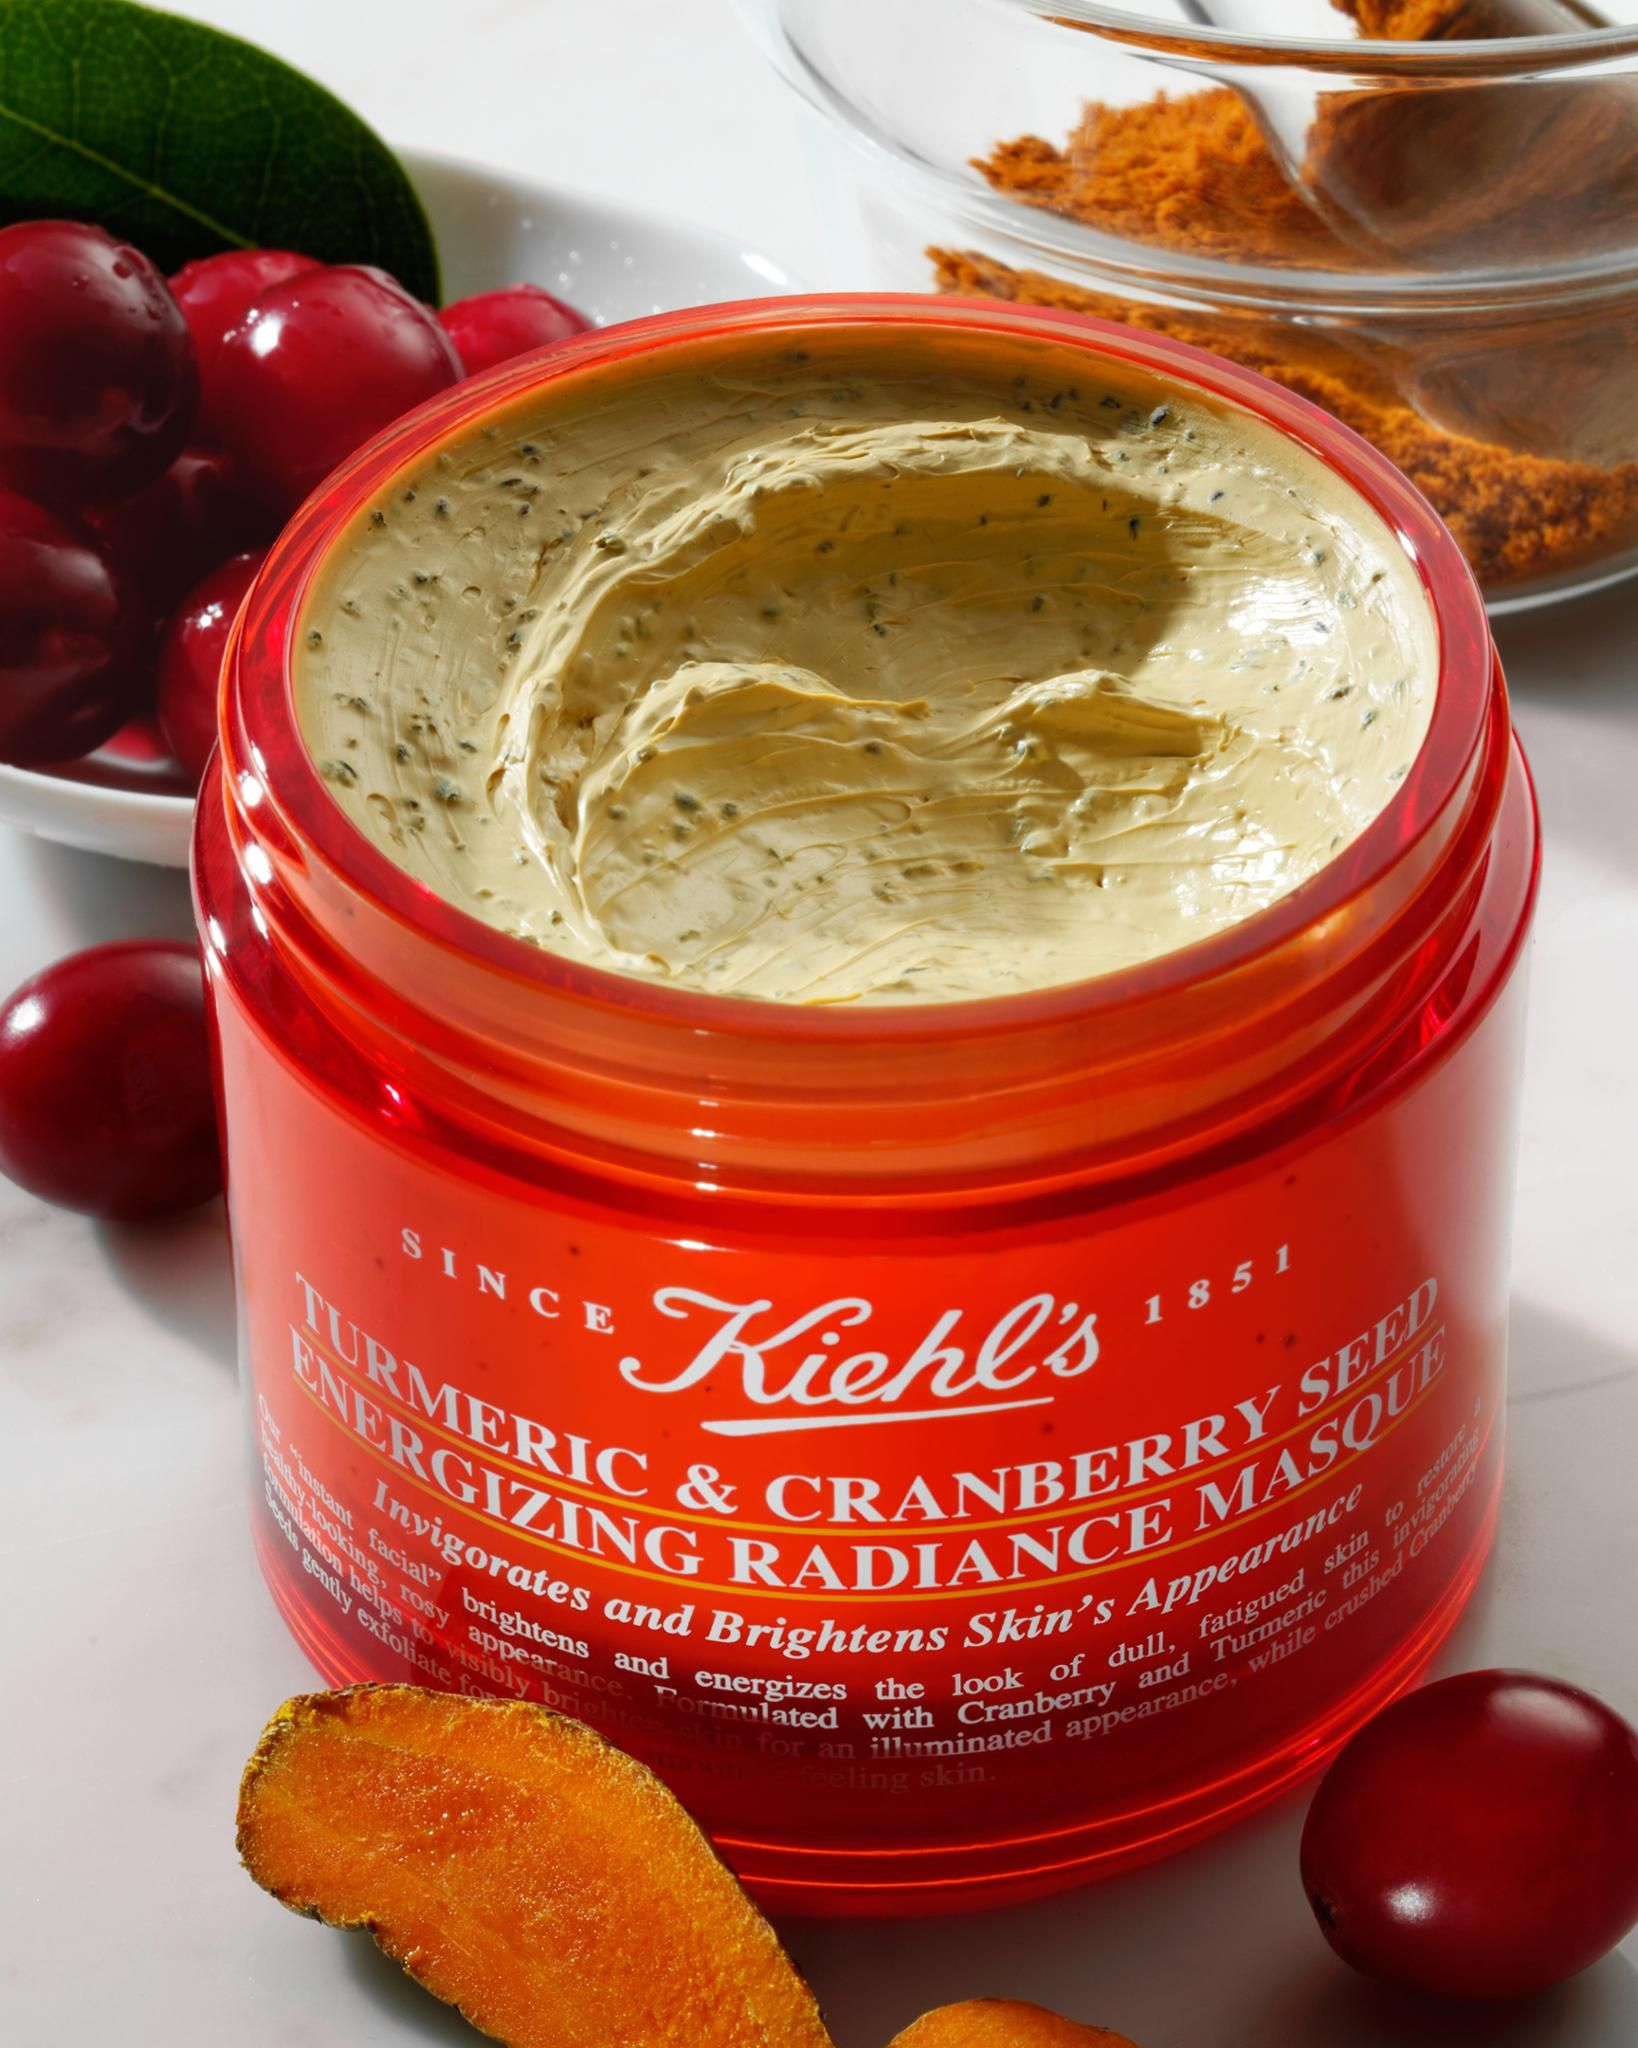 Choose a winter face mask to uncover a glowing complexion in just one swipe! Our Turmeric & Cranberry Seed Energizing Radiance Mask instantly brightens fatigued skin with powerful ingredients like micronized cranberry seeds and turmeric, both rich in antioxidants.